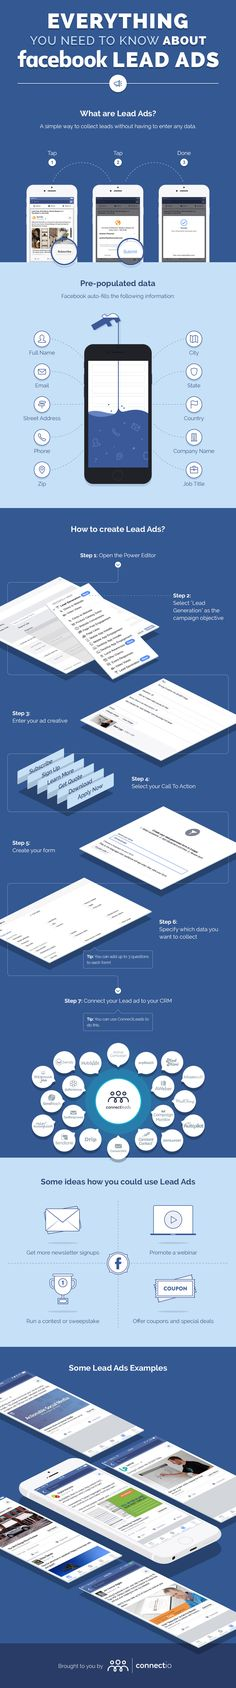 Facebook Lead Ads infographic